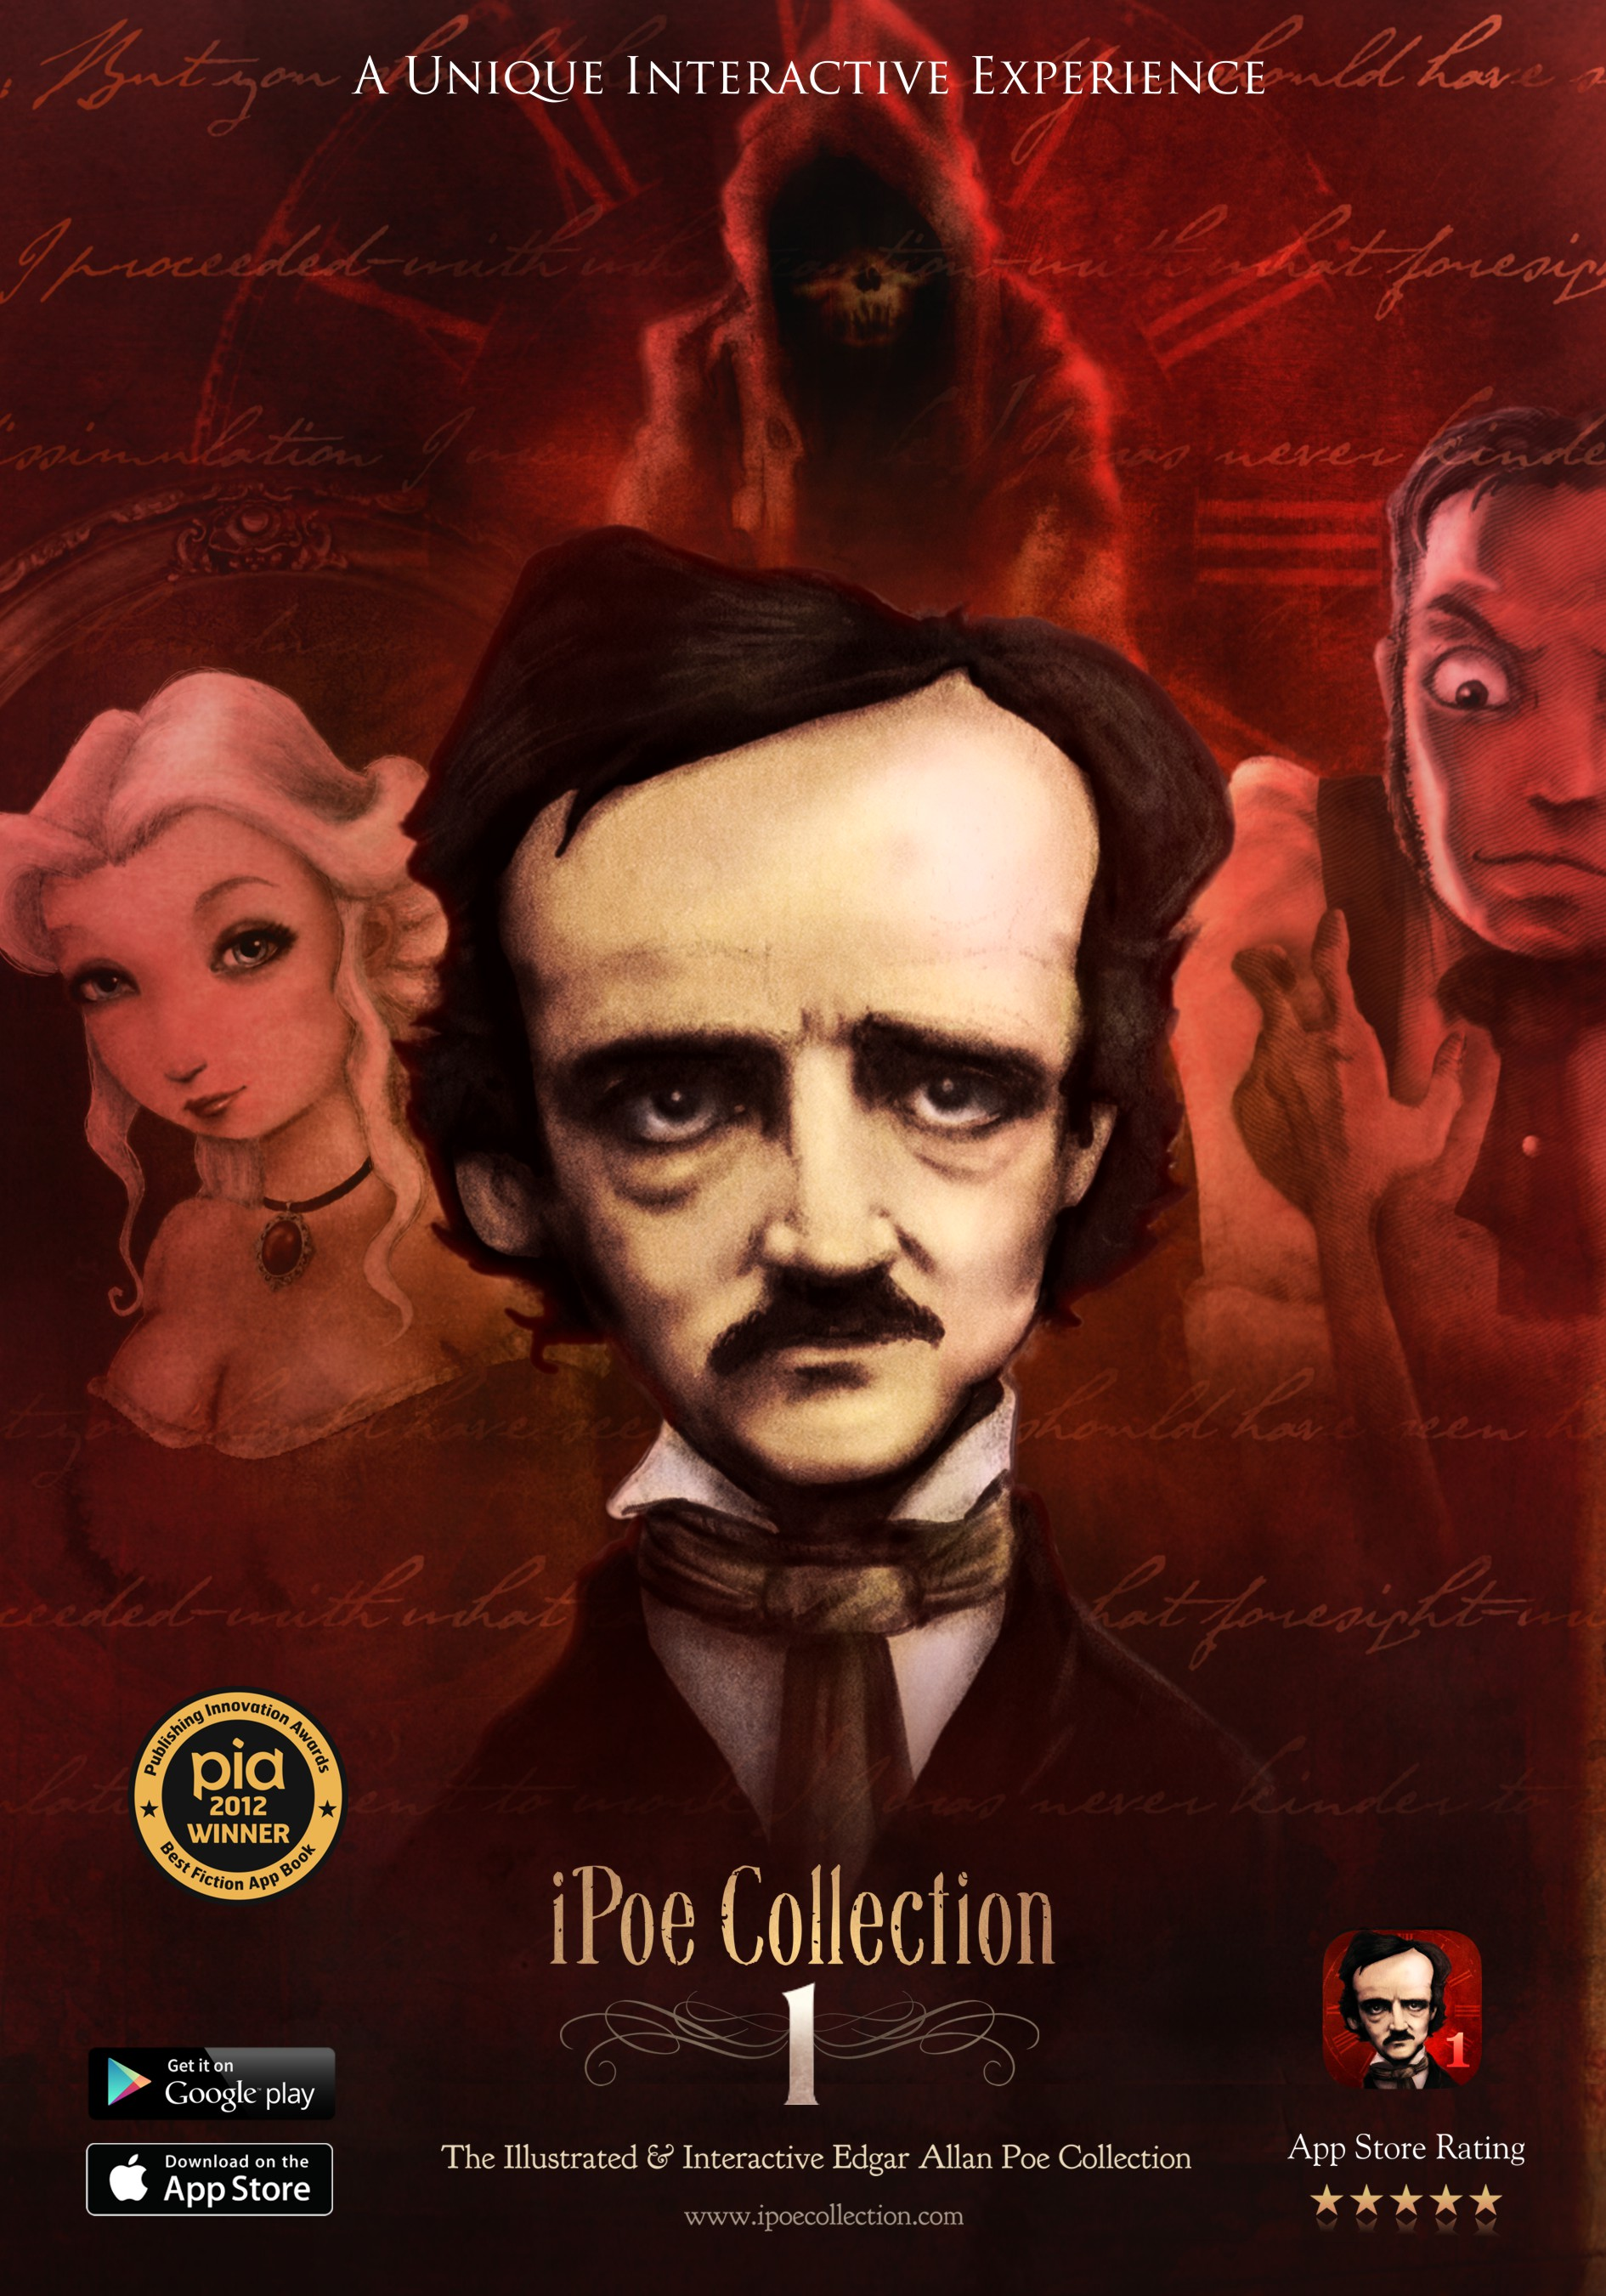 iPoe collection vol1: The illustrated and interactive Edgar Allan Poe collection